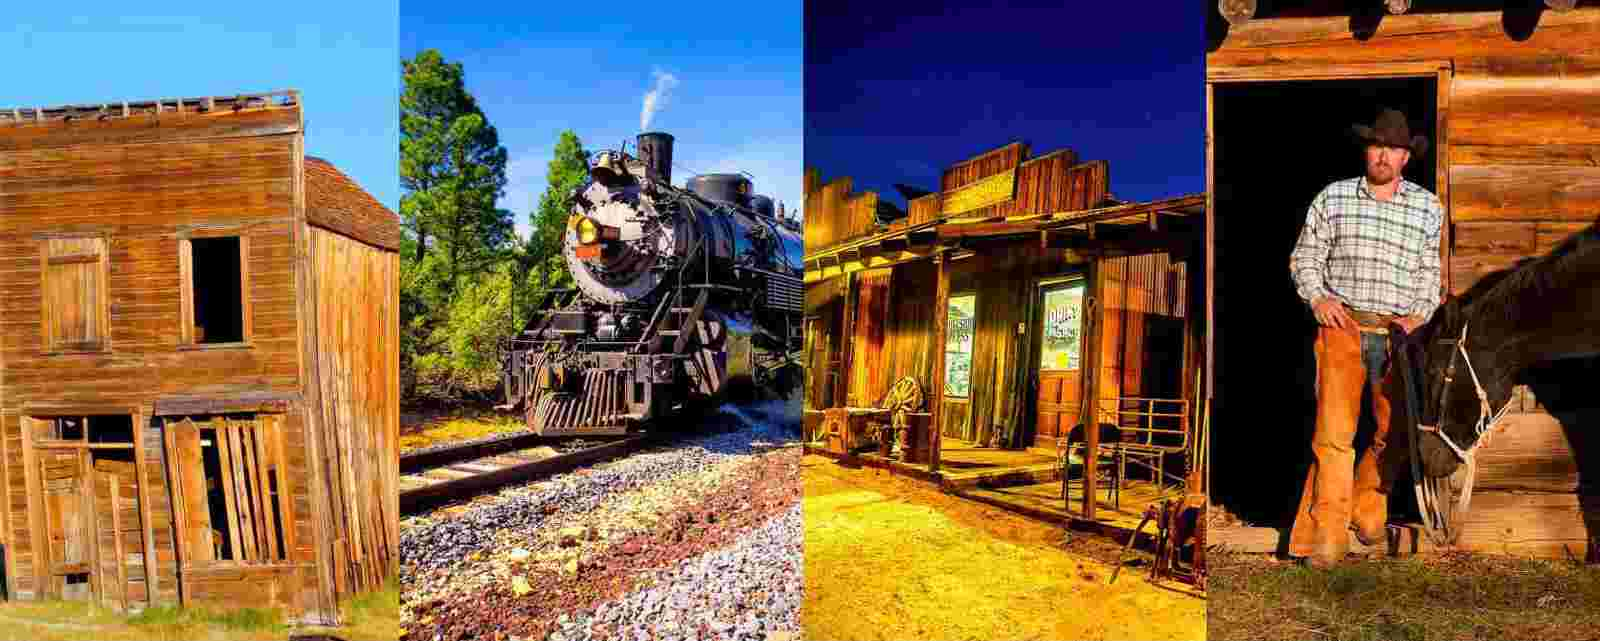 Ghost Towns, Old Cars and Cowboys Photographs